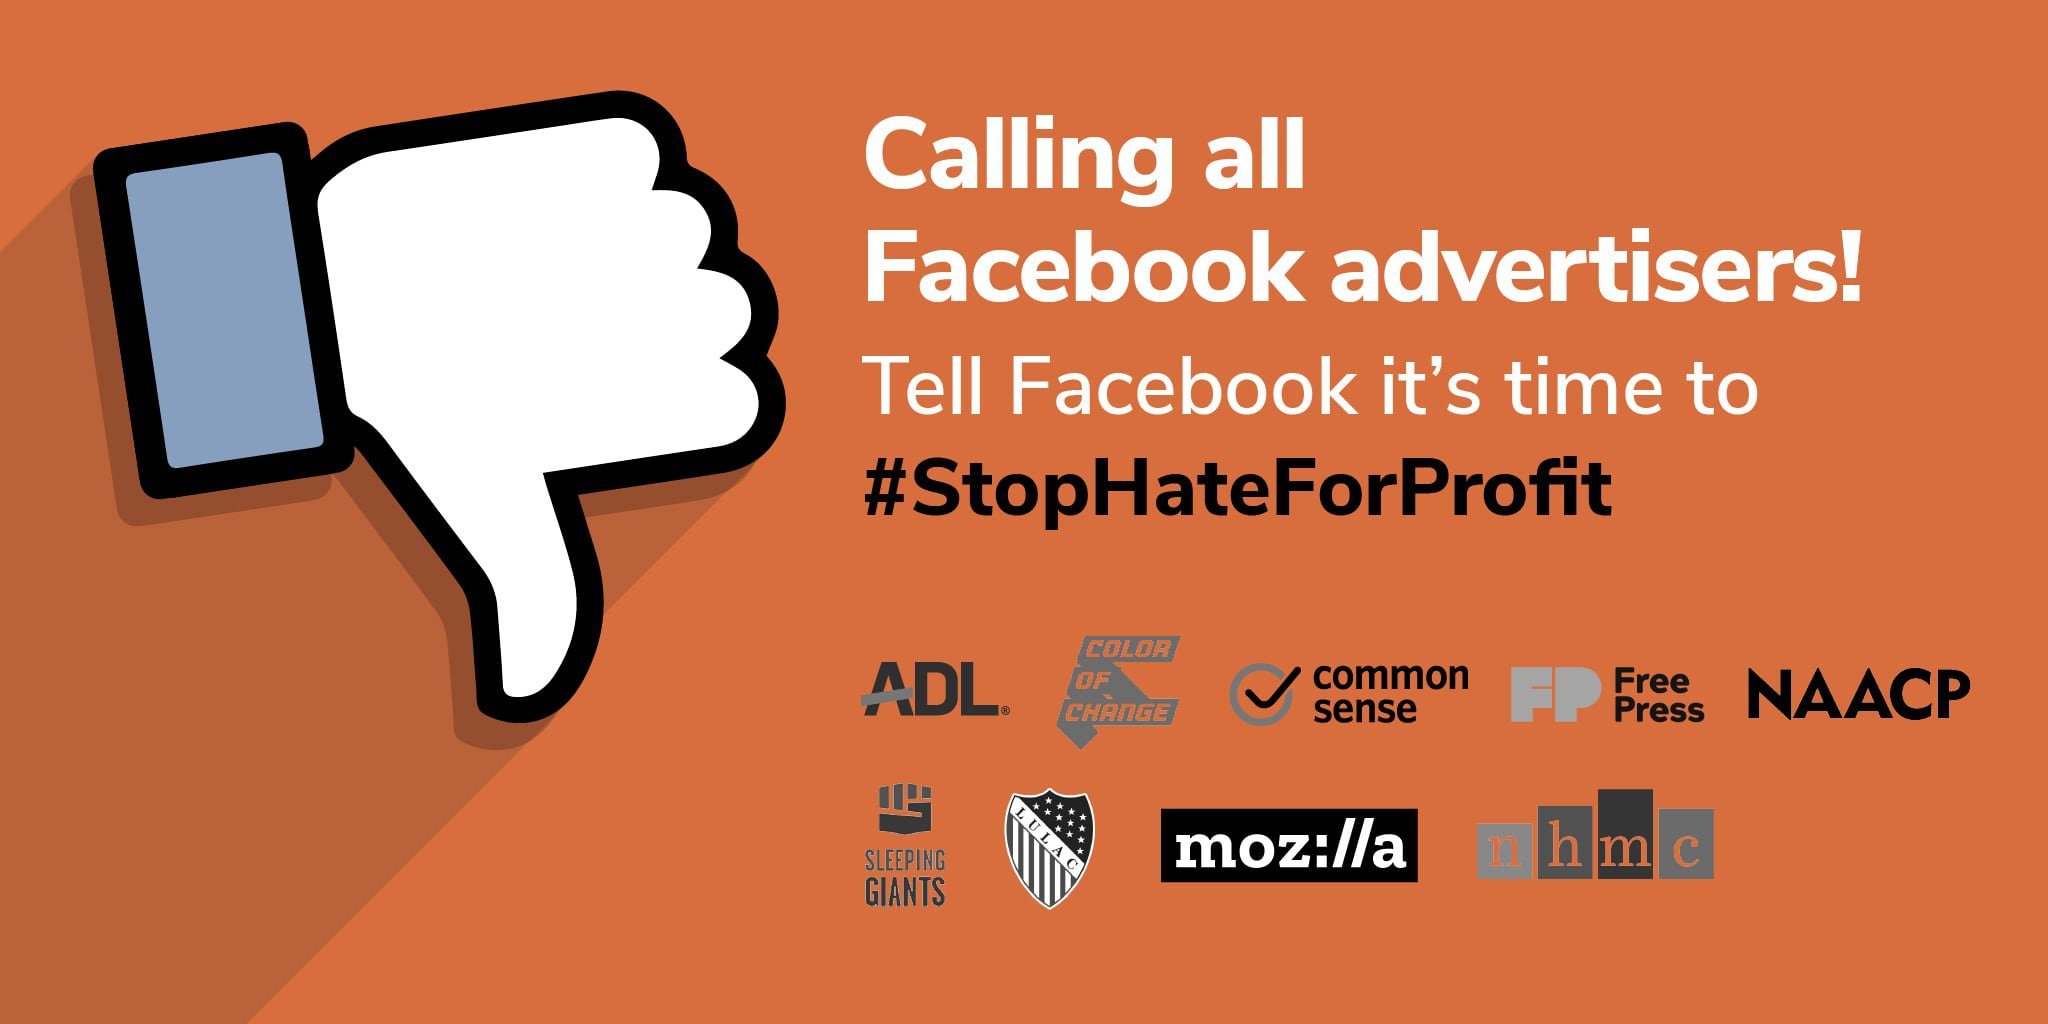 Calling all Facebook advertisers! Tell Facebook it's time to #StopHateForProfit